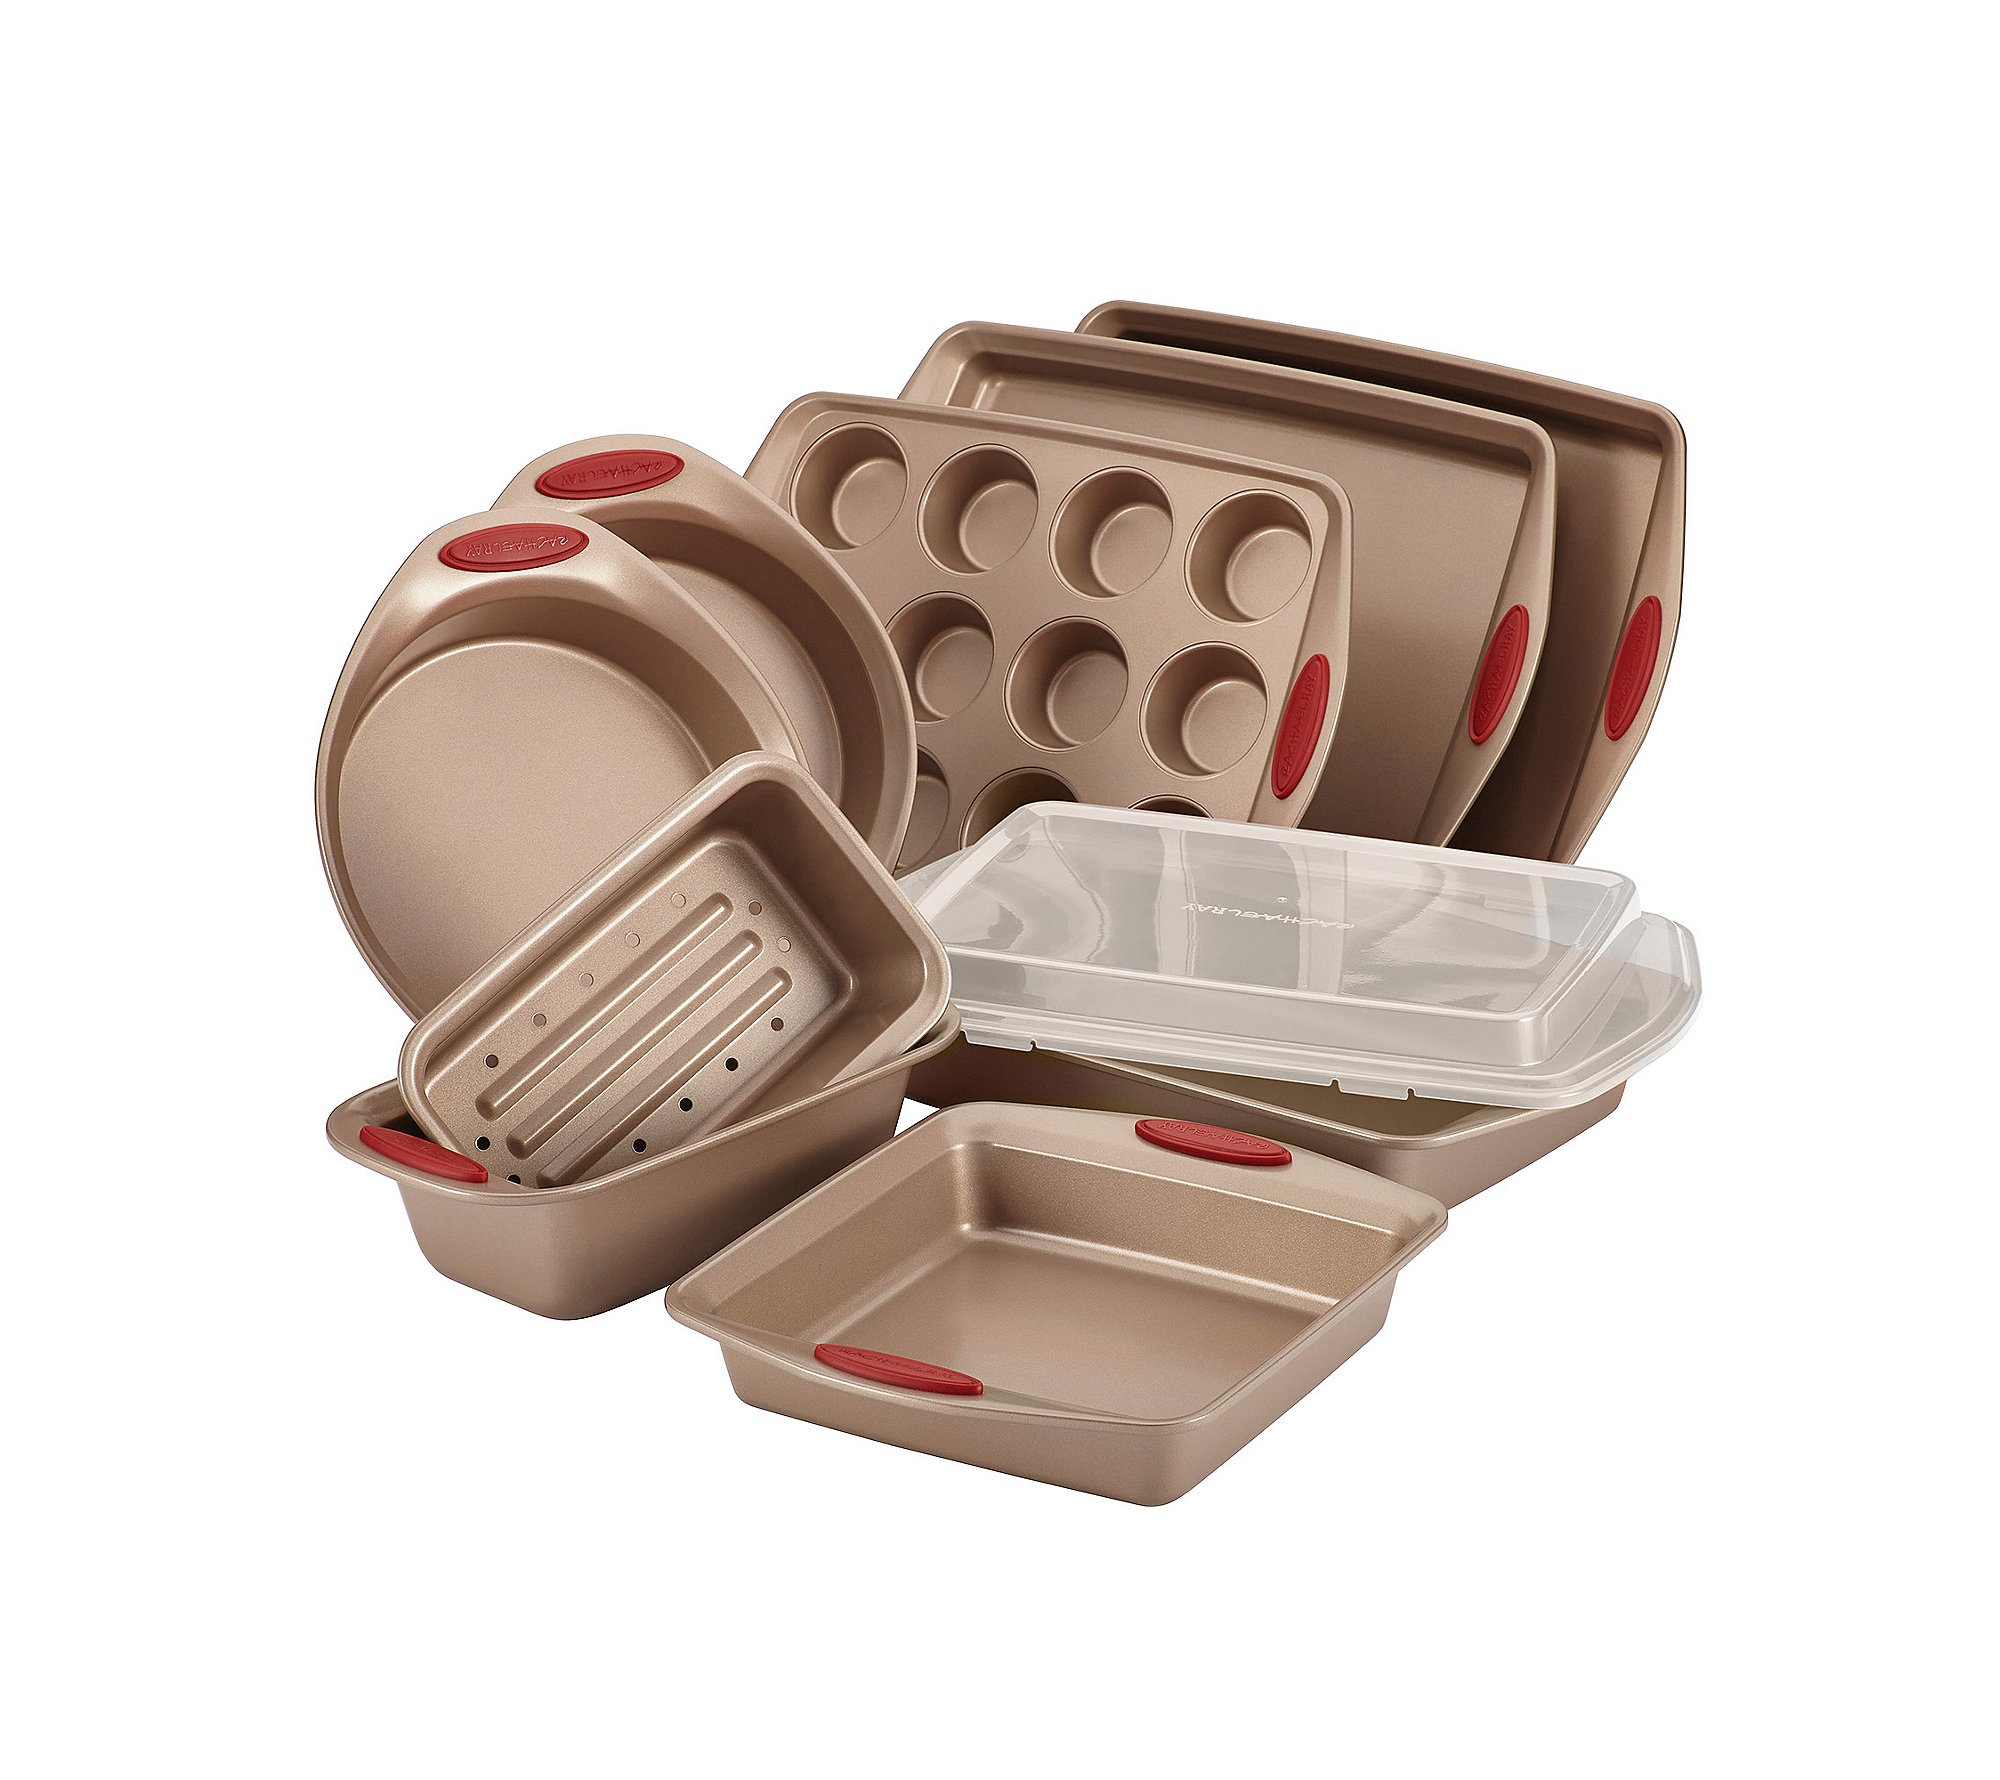 Rachael Ray 10-pc. Brown Cucina Nonstick Bakeware Set with Red Silicone Handles 817nNhEzYGL